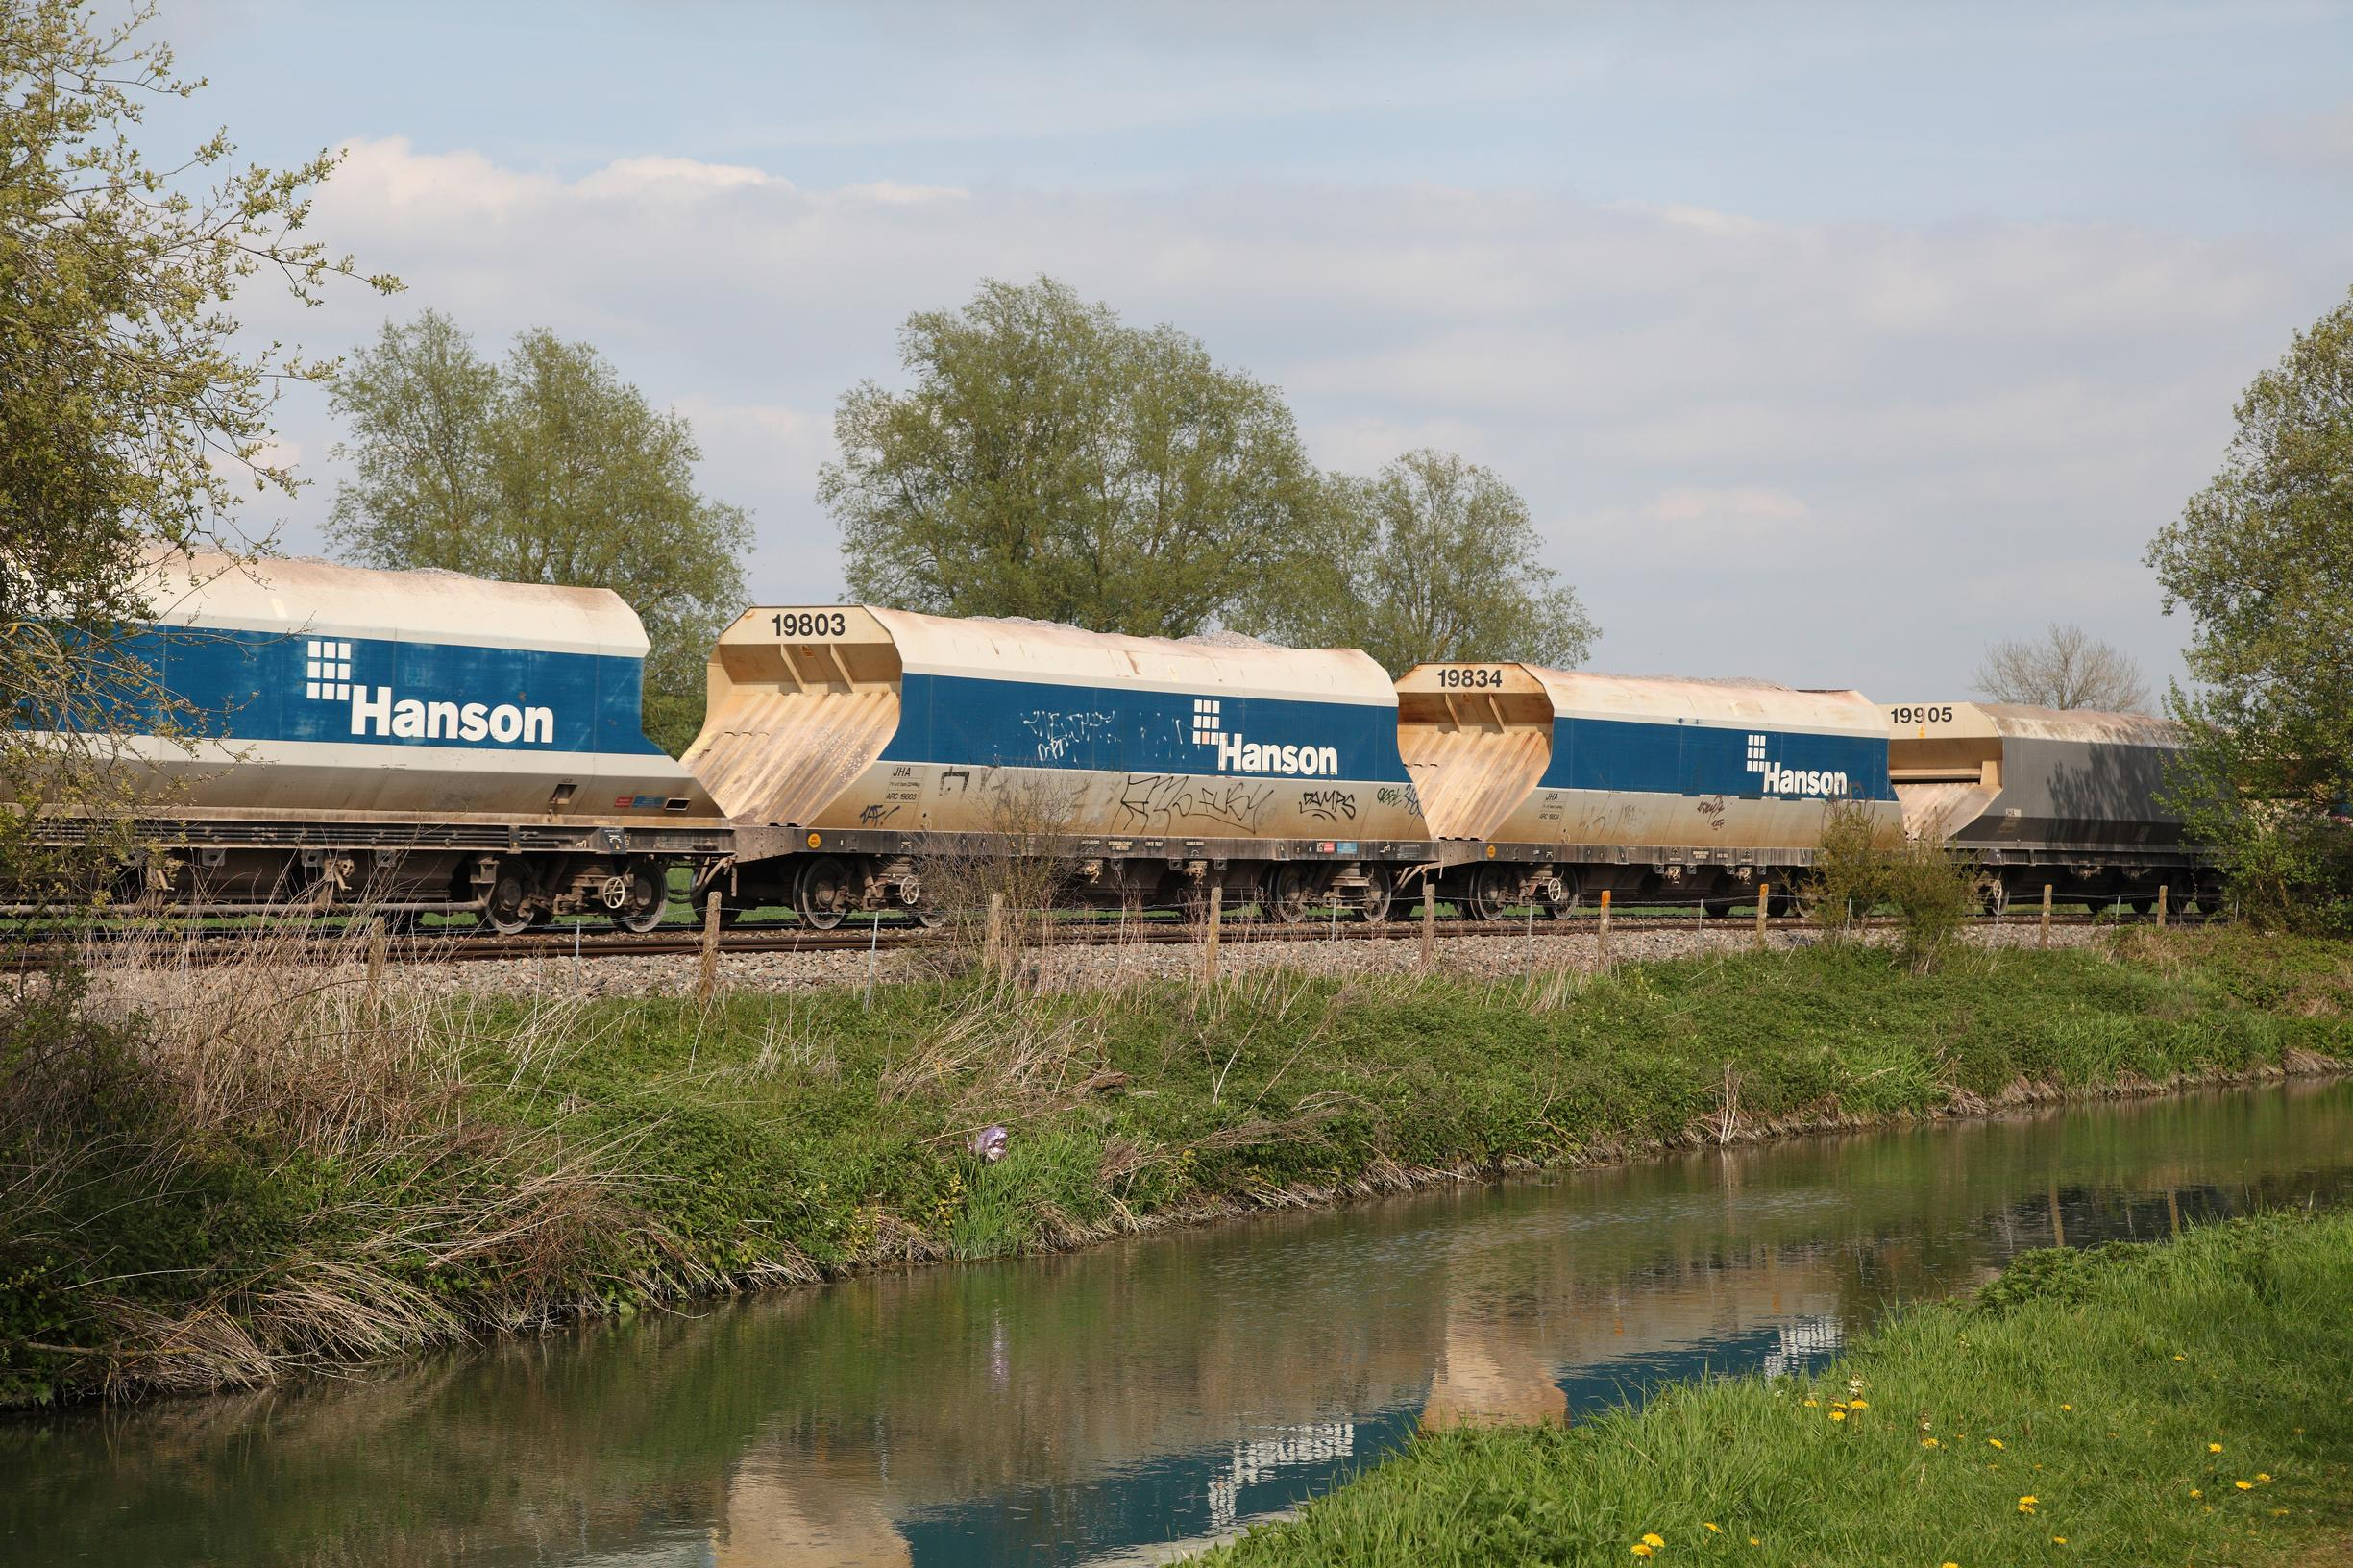 Rail carries 20 million tonnes of aggregate a year. Without electrification, lorry miles could rise under the NIC's proposal for a diesel freight train ban